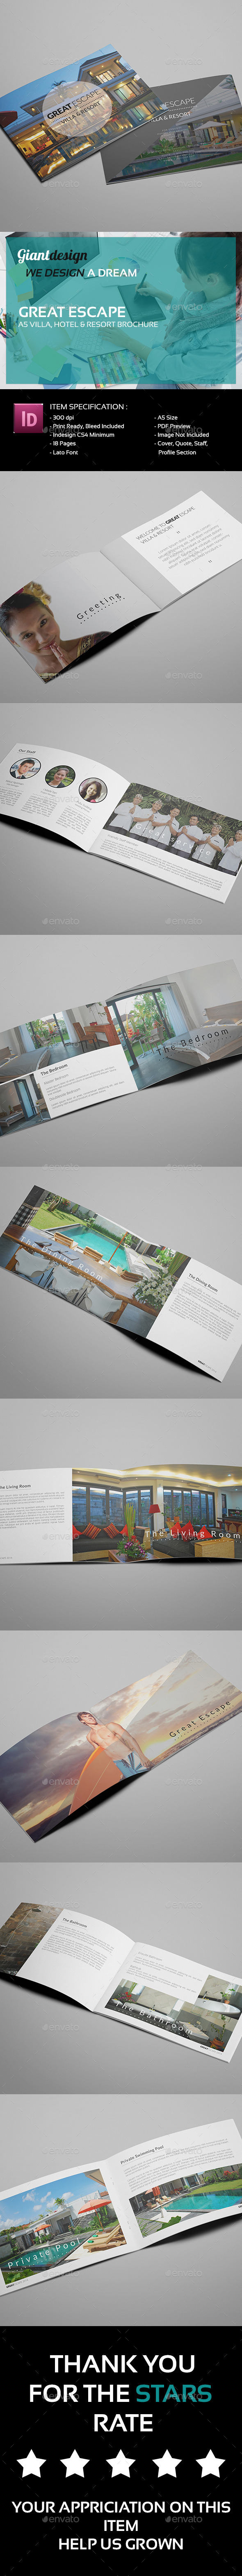 Great Escape - A5 Villa Resort Brochure - Corporate Brochures